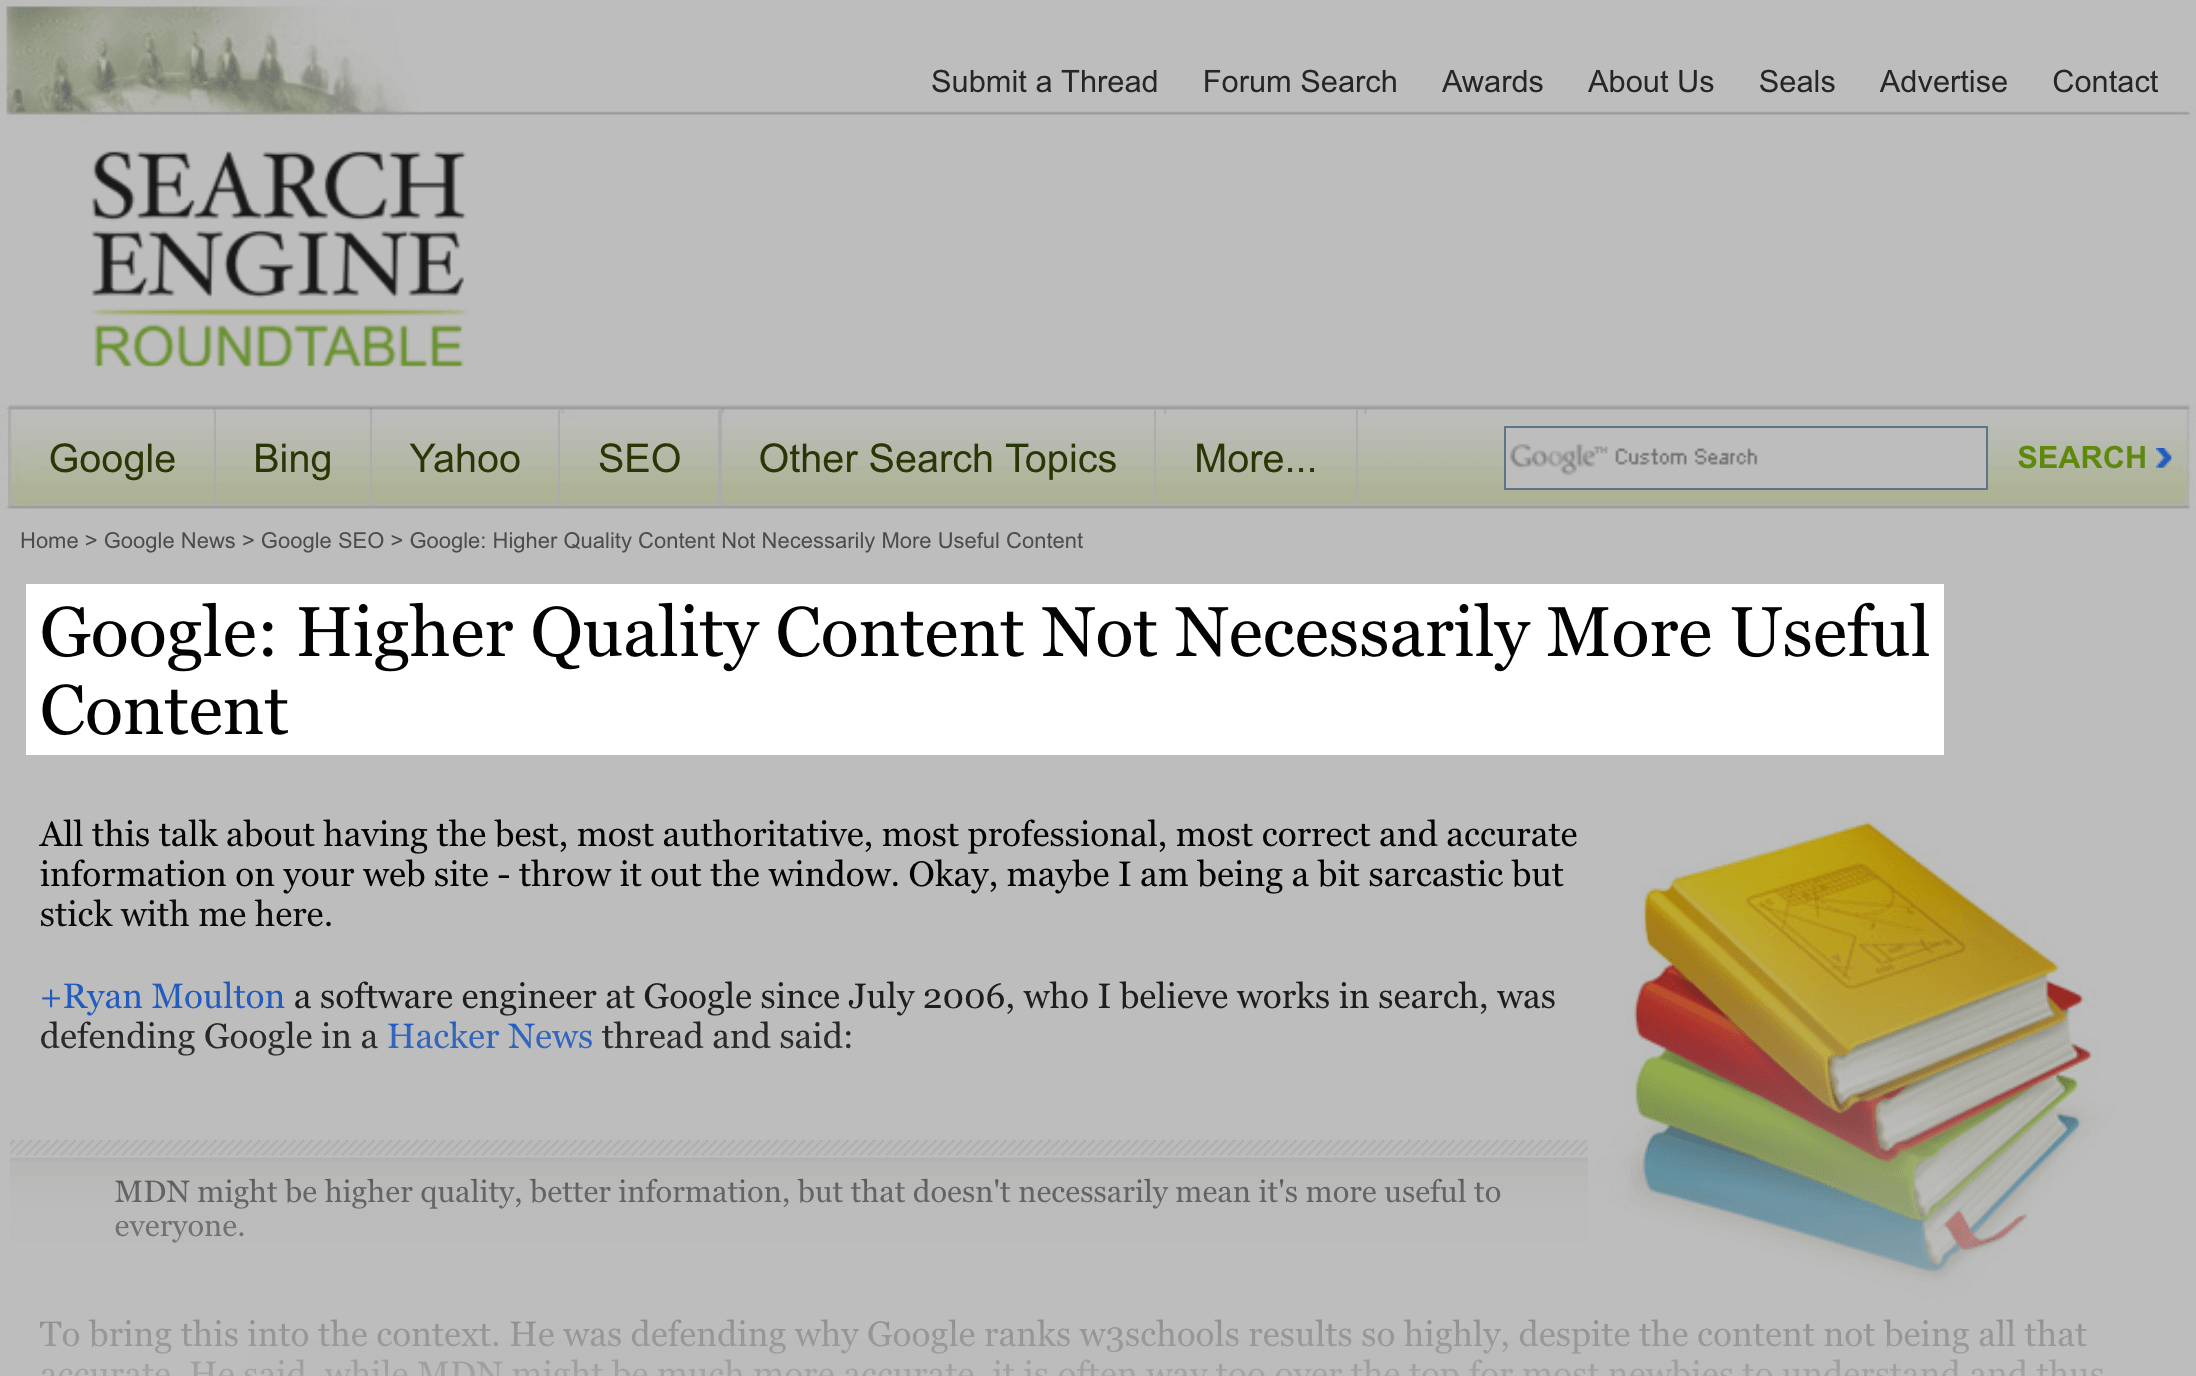 Distinction between higher-quality content and useful content